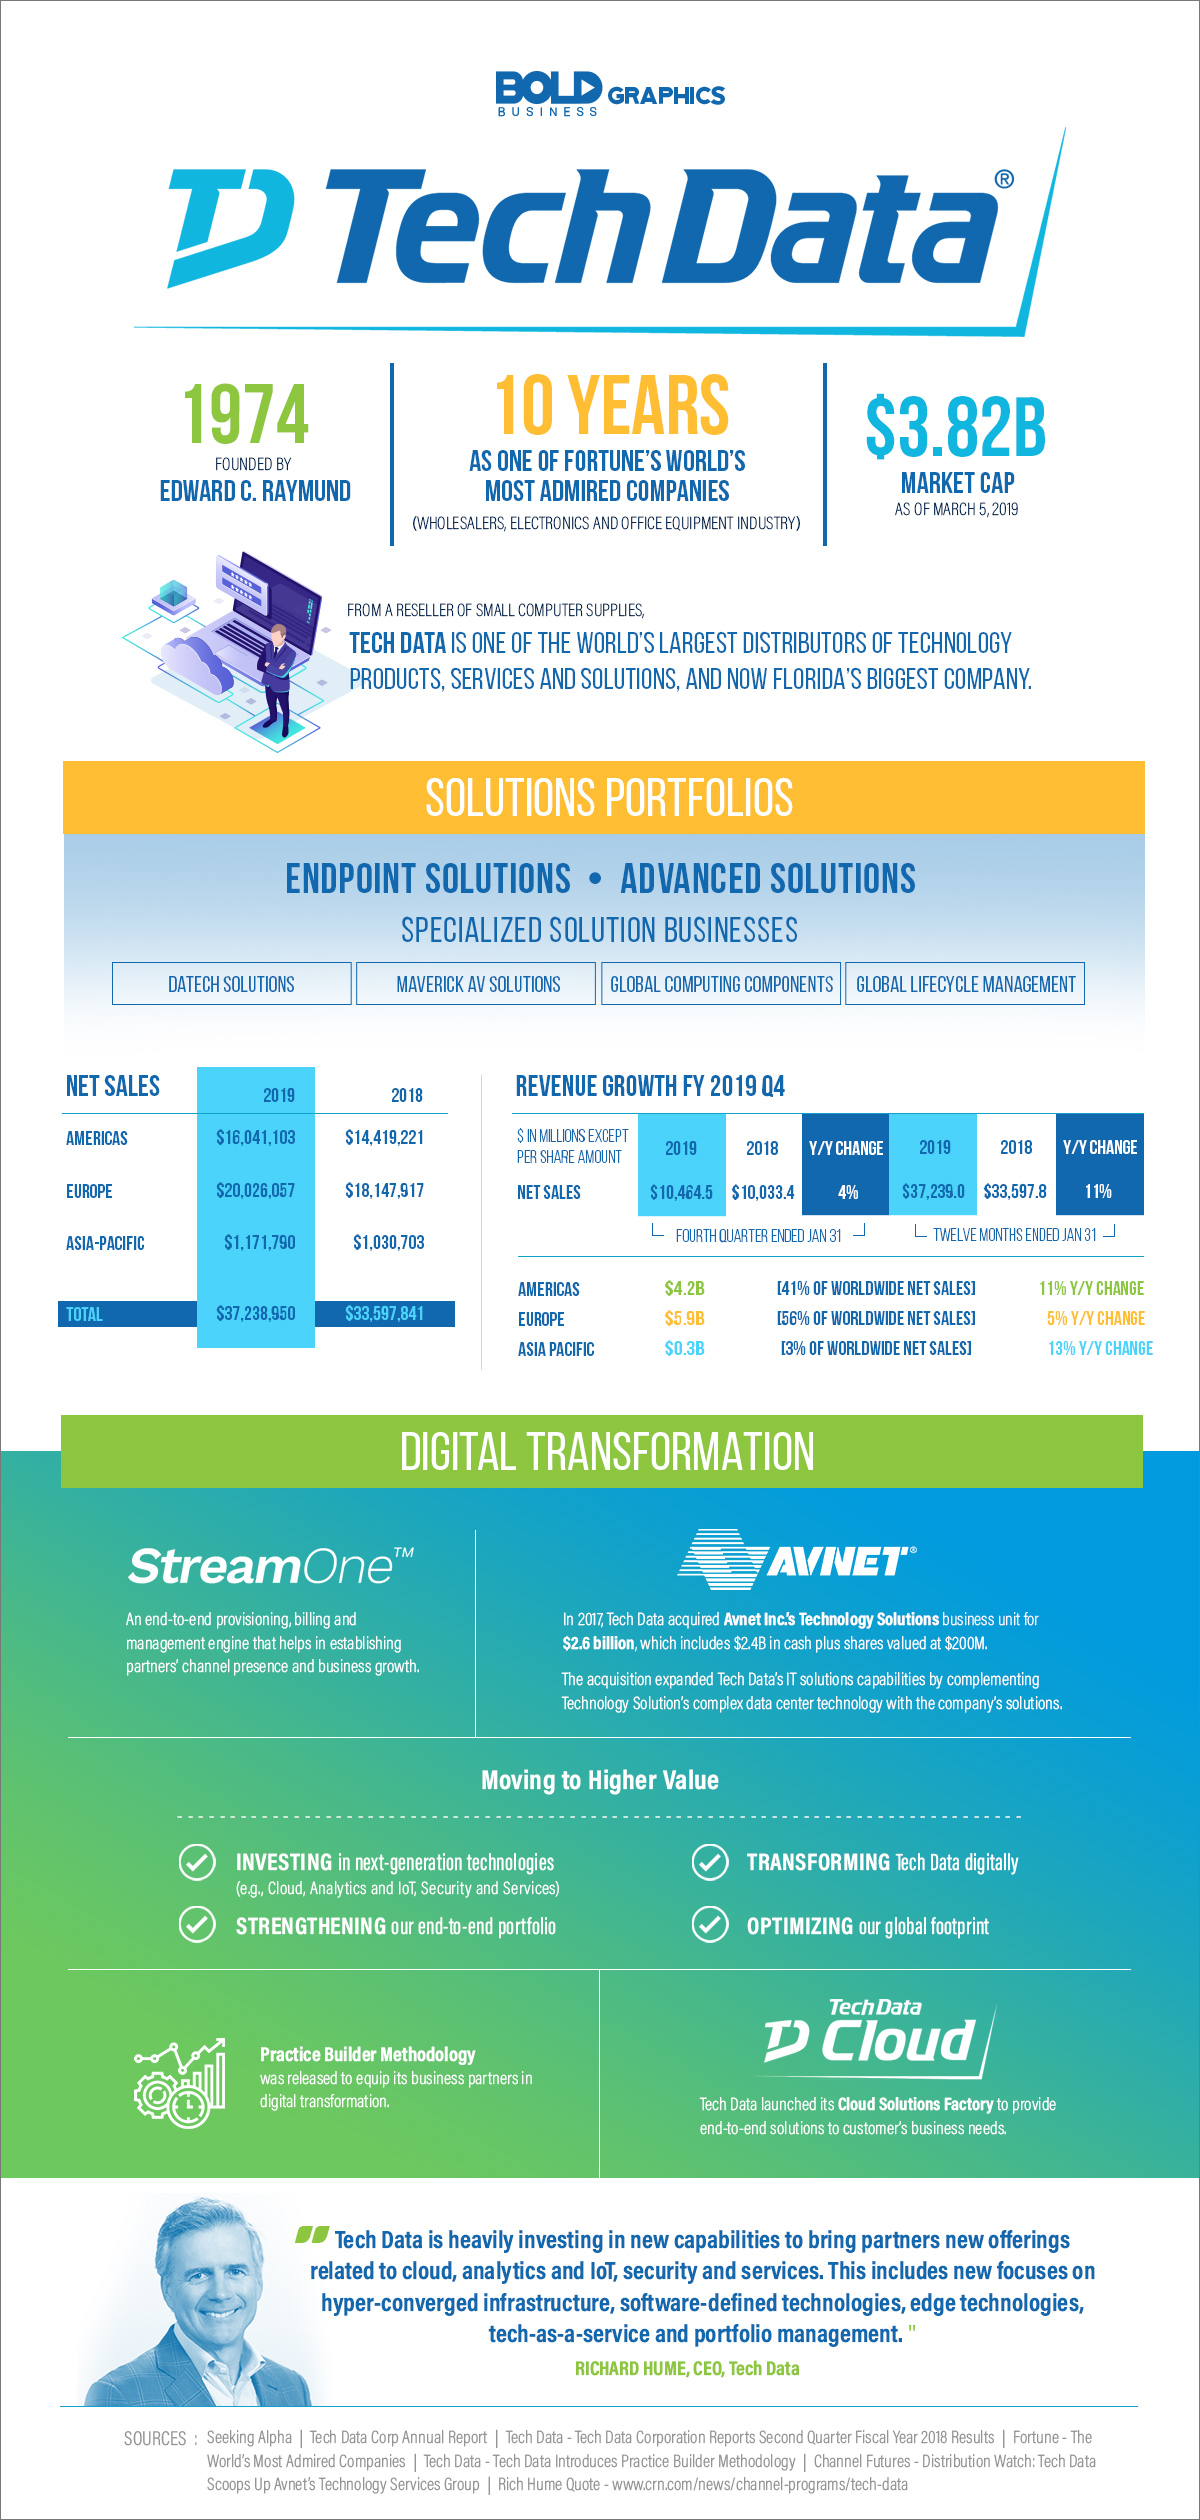 infographic about tech data company, their history and recipe for success as distributors of technology and solutions